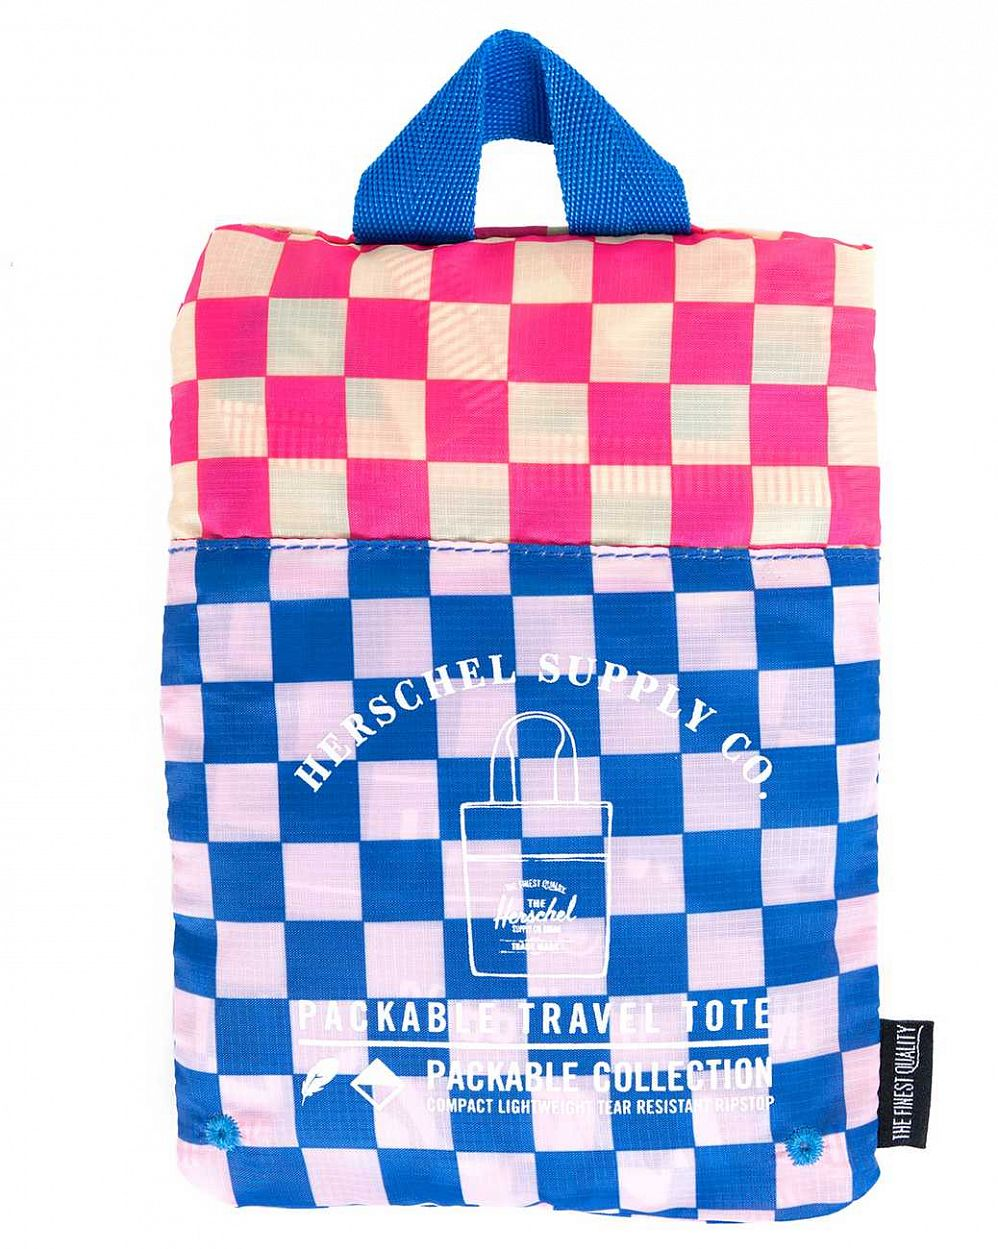 Сумка складная Herschel Packable Travel Tote Bag Cobalt Picnic купить в интернете